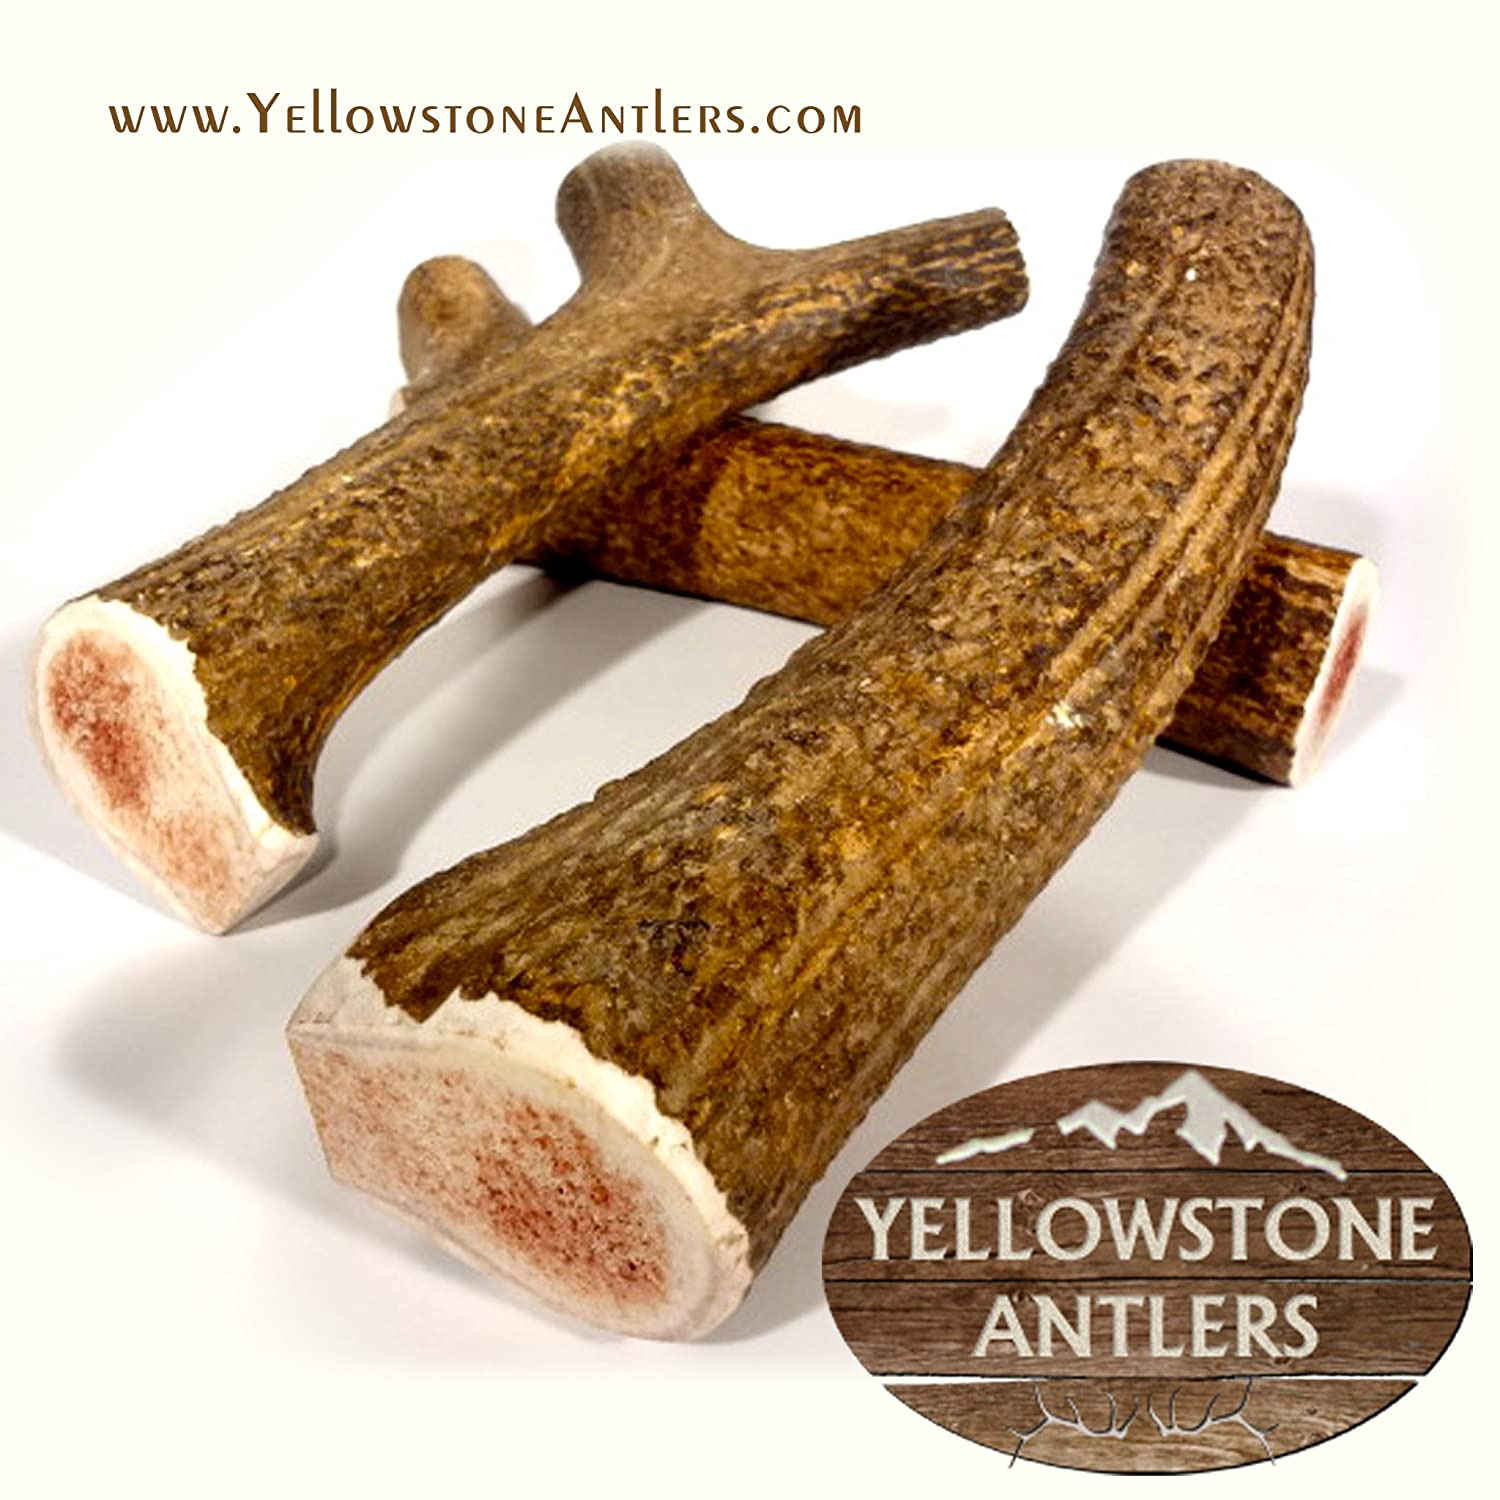 Elk Antler Dog Chews for X-Large Dogs 10-11 inches Over 1 Pound Made from Grade-A USA Elk Antlers